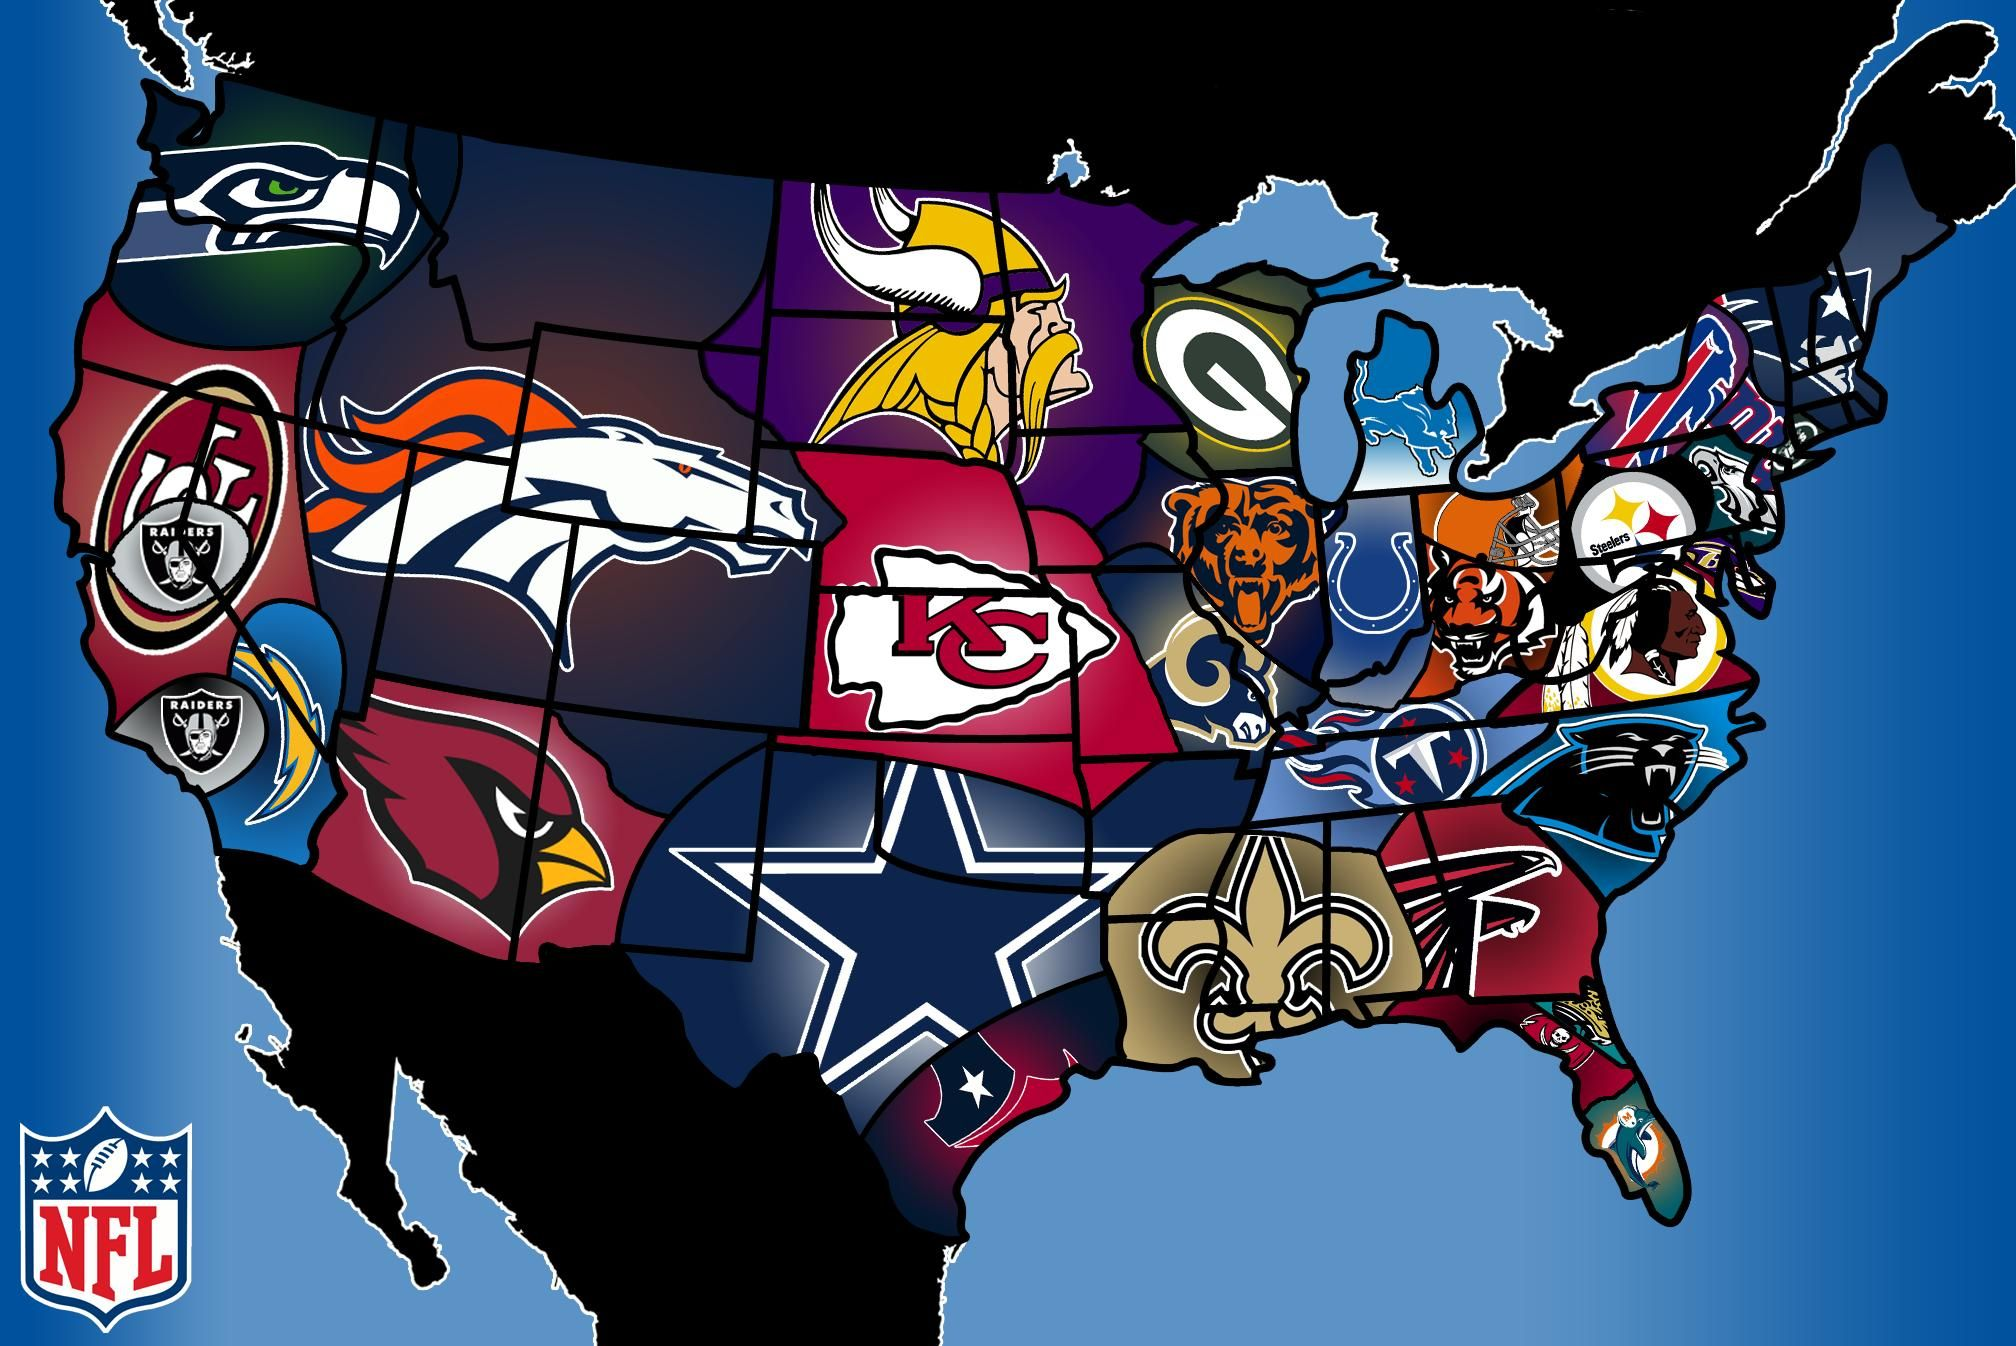 Pin By Masturo Wandes On Free Hd Wallpapers Nfl Fans Nfl Season - Us-map-nfl-teams